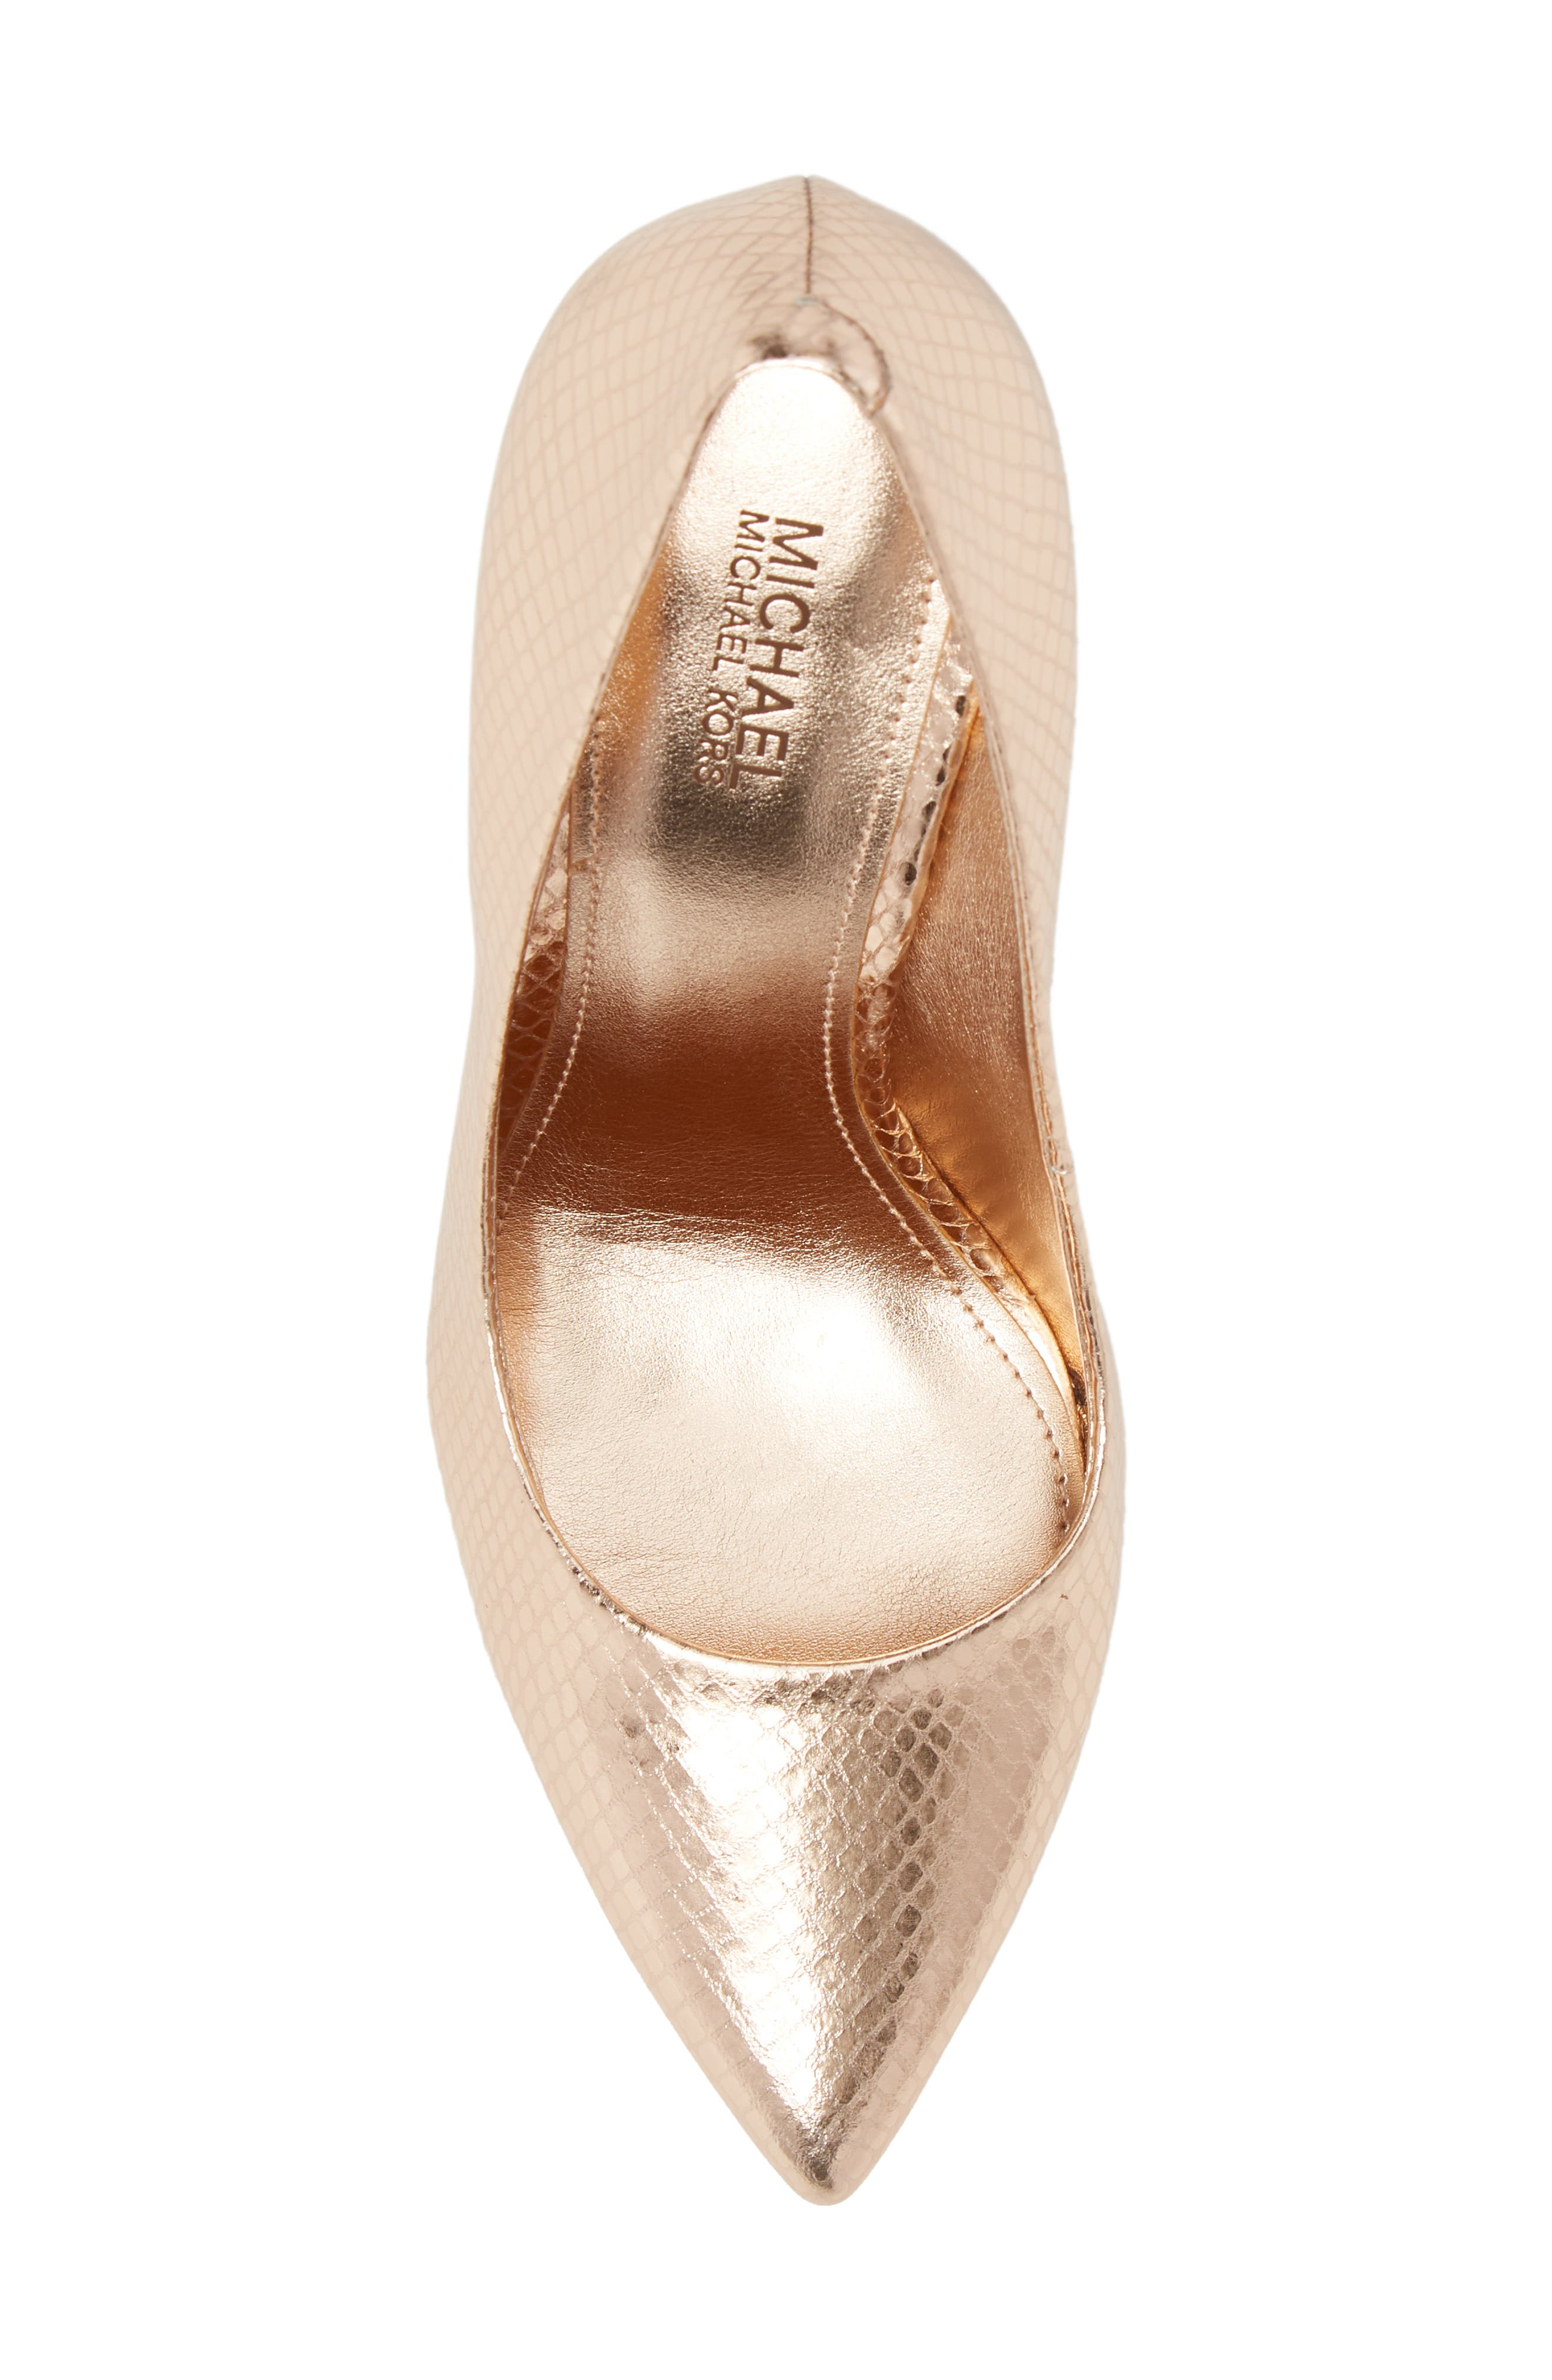 Claire Pointy Toe Pump,                             Alternate thumbnail 3, color,                             Soft Pink Snake Print Fabric